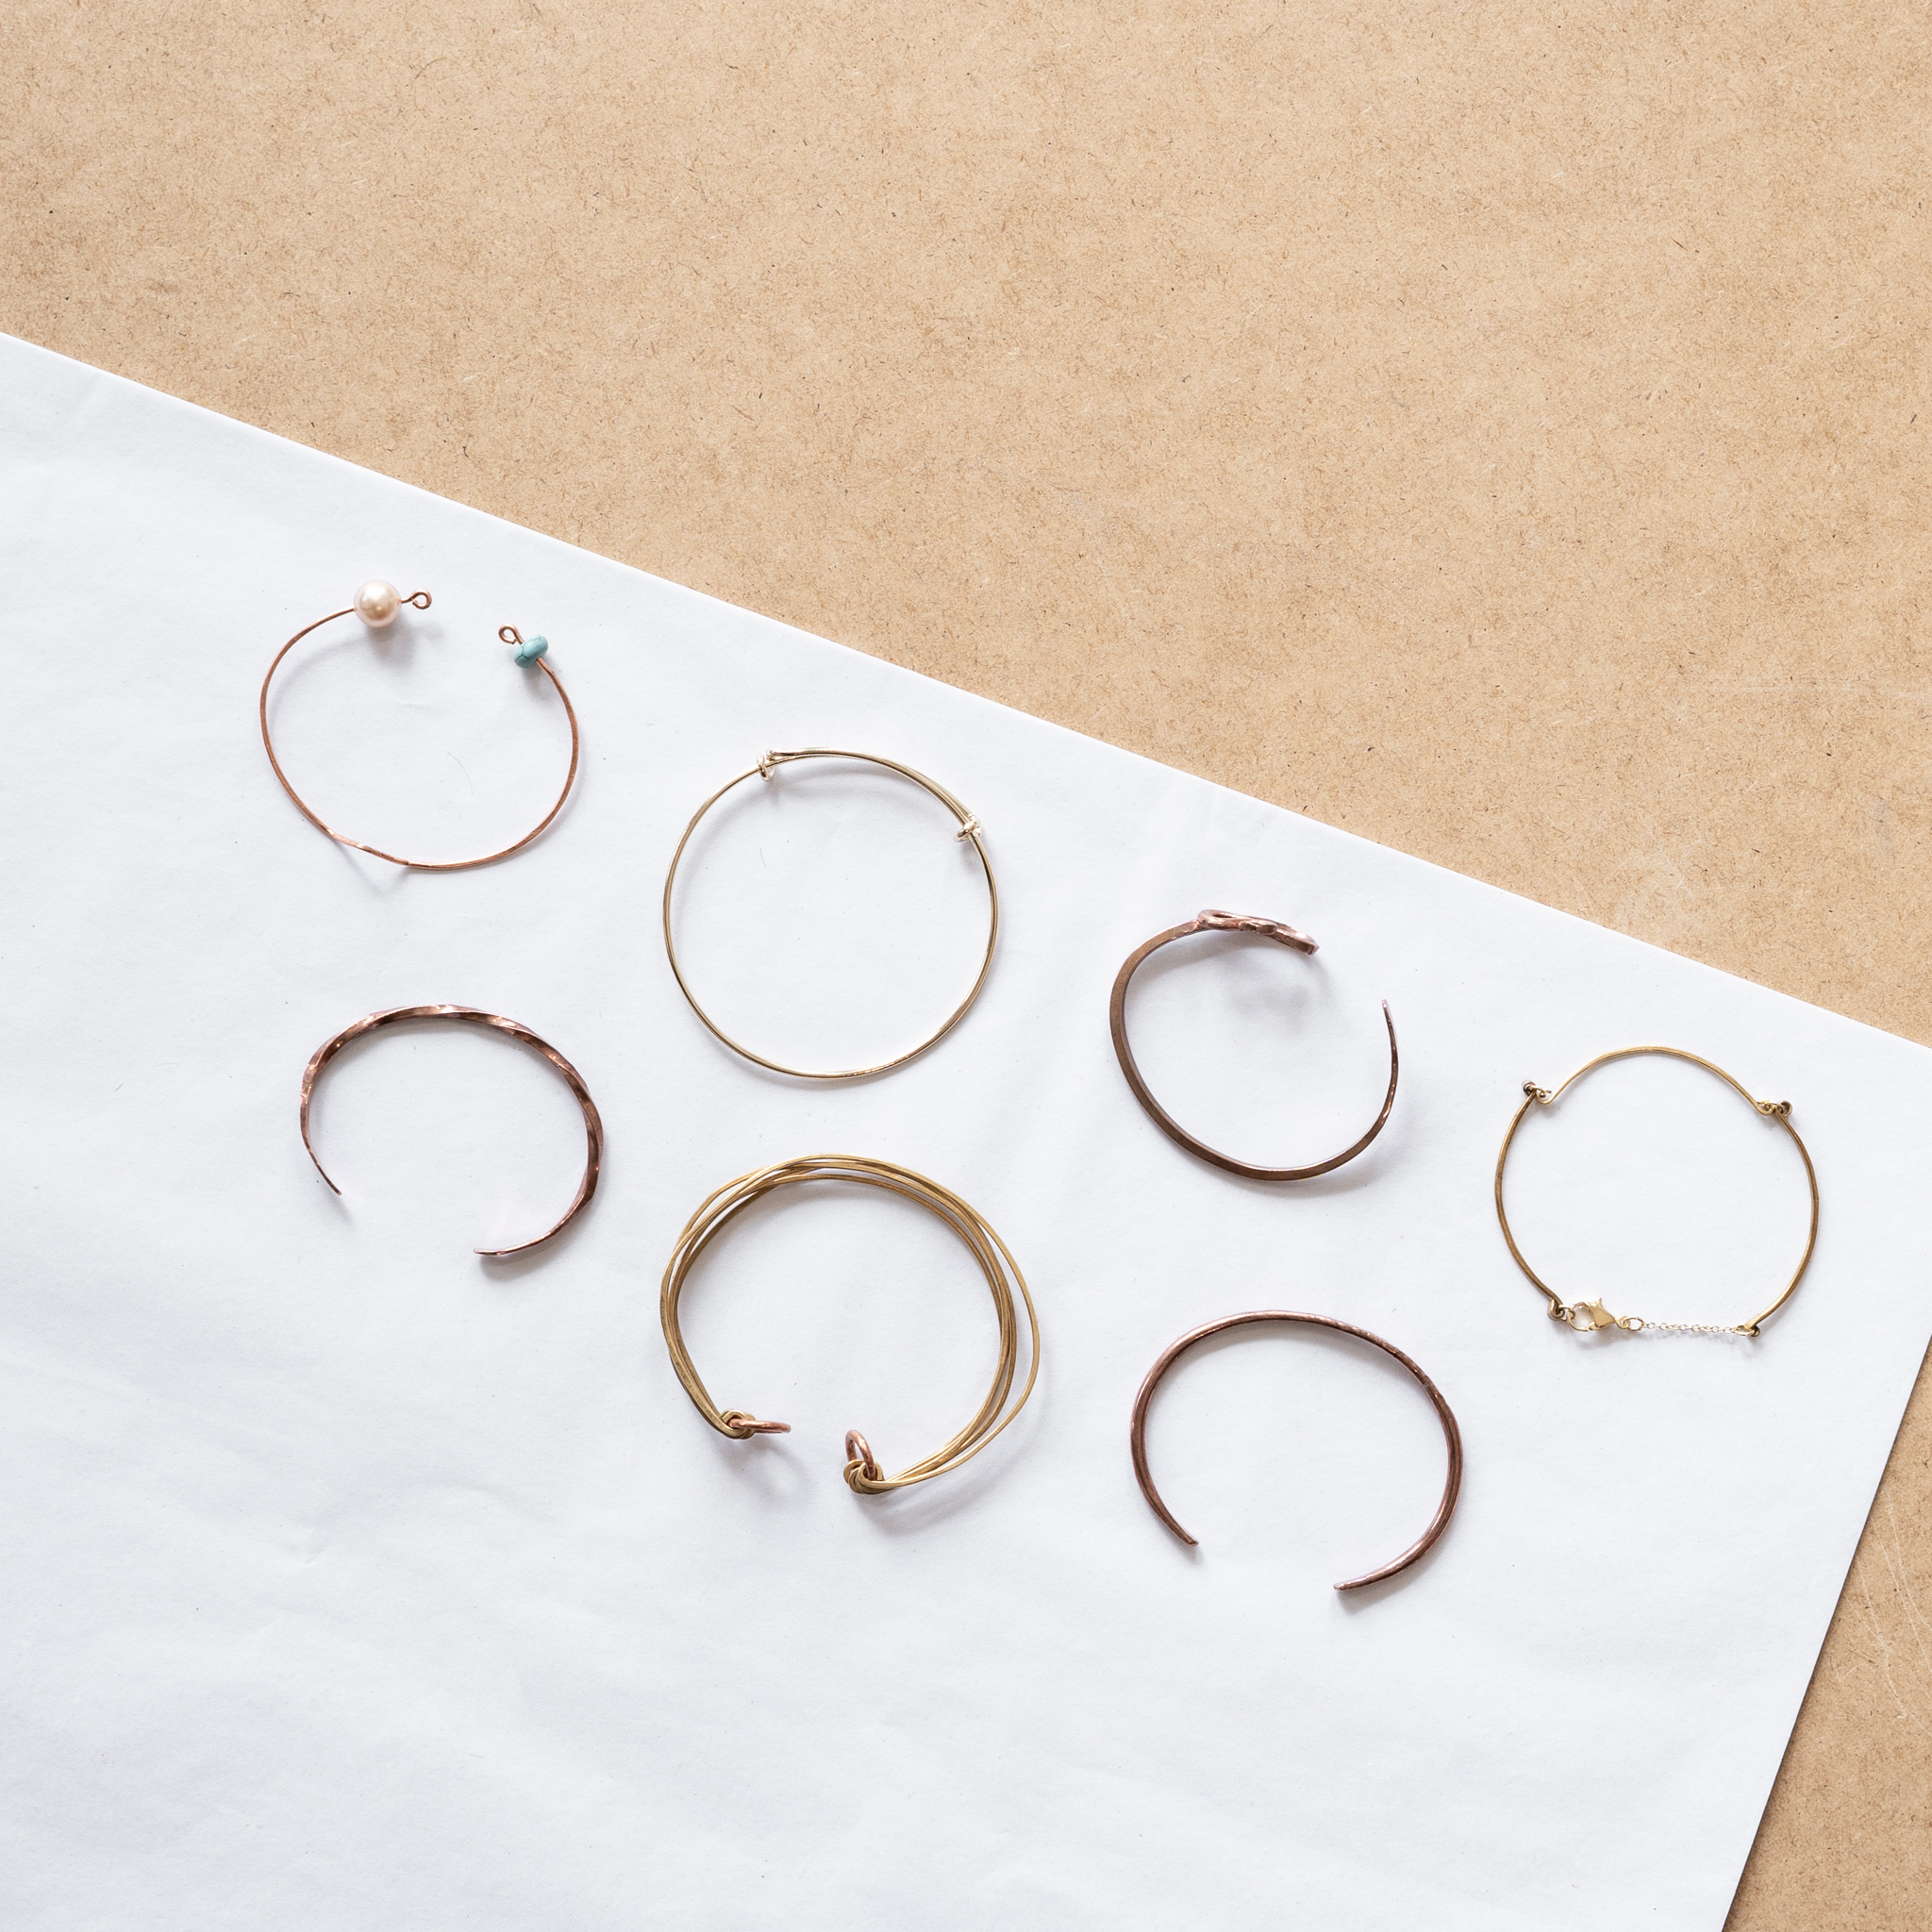 Cuff Class - $45 (brass/copper) $65 (silver)Work with wire to create a set of bangles or sheet metal to create a cuff.